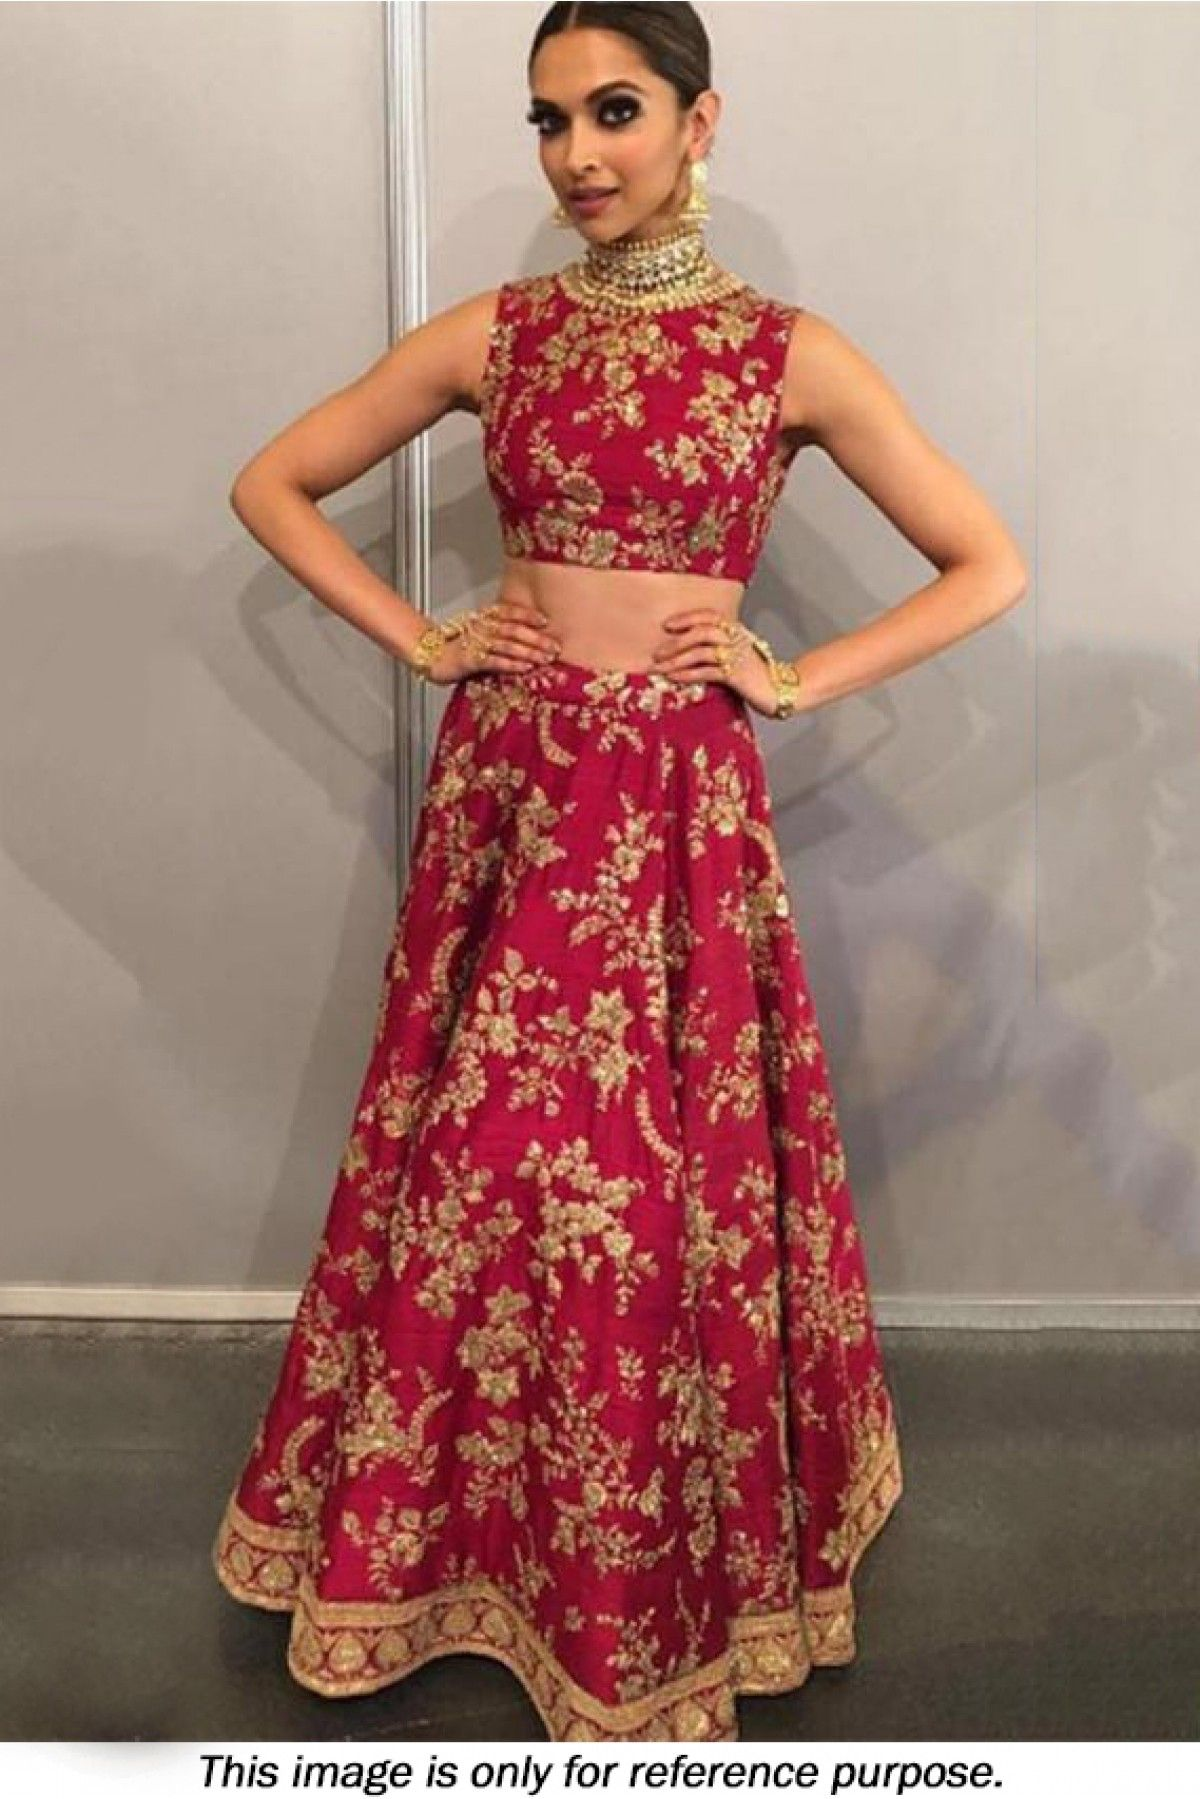 eb1edd3d31 Bollywood celebrities have given a new dimension to the Indian Lehenga  giving a whole new range of variety to shoppers. Lehenga worn by Bollywood  ...